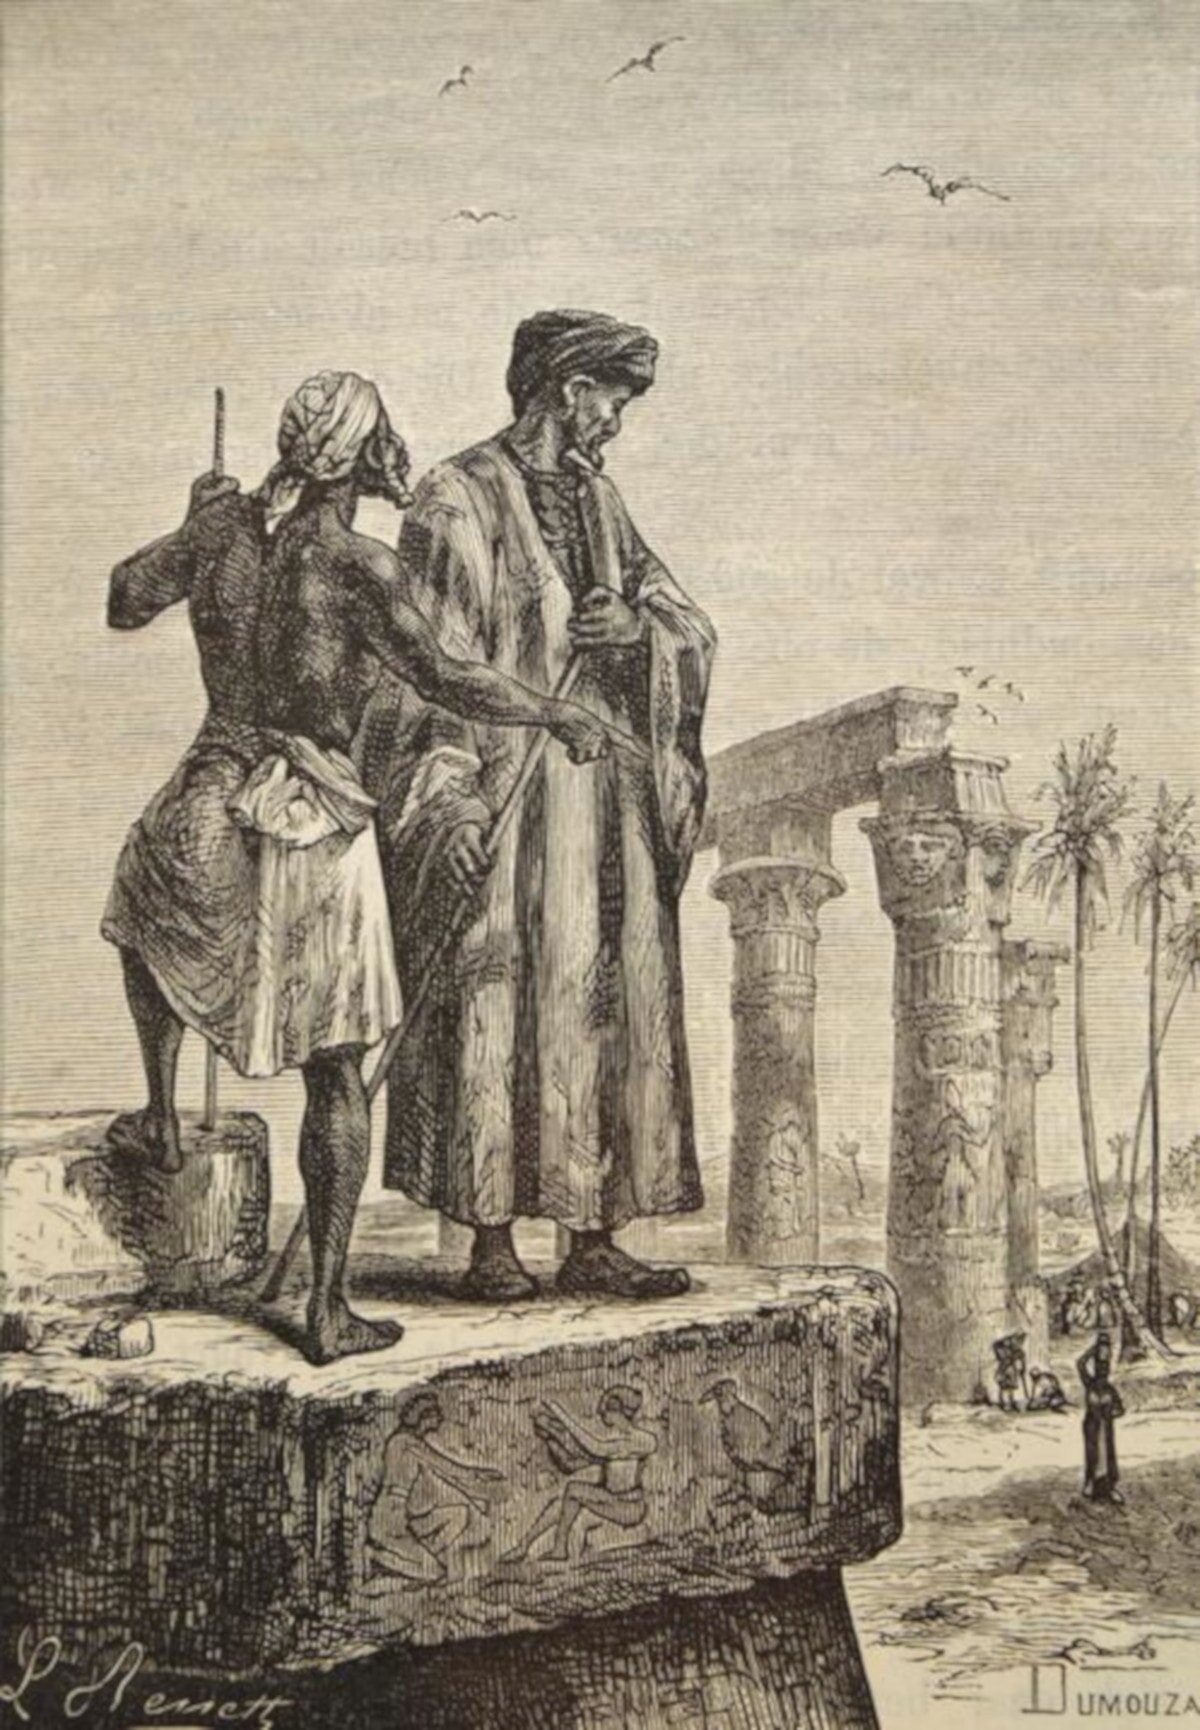 Ibn Battuta is Africa's answer to Marco Polo and one of the most famous explorers in history who never gets the credit he deserves!